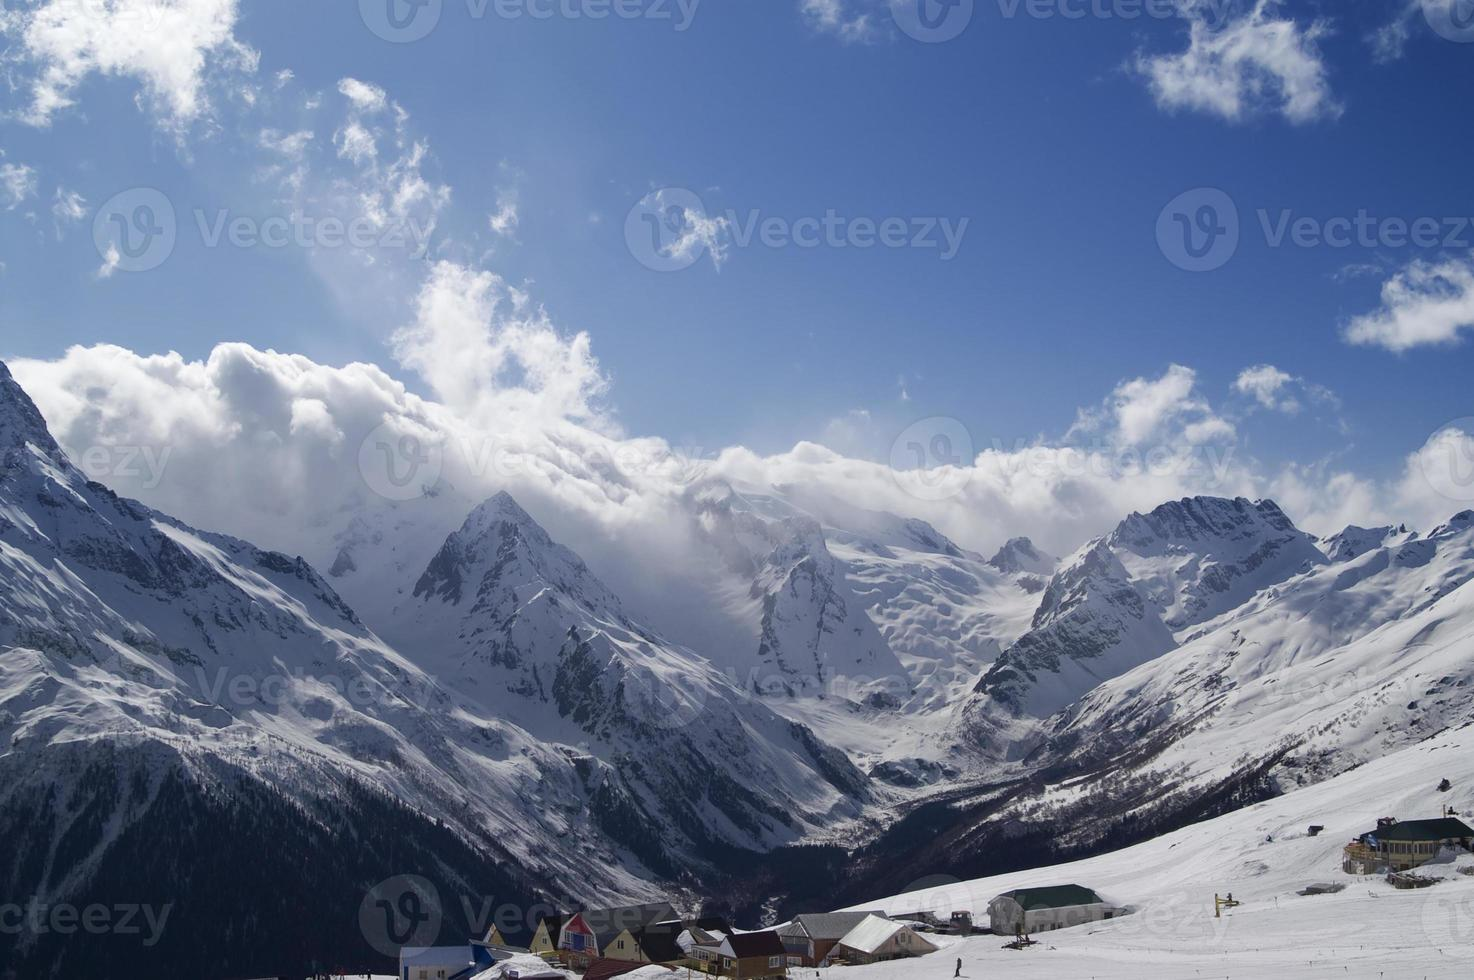 Cafe and hotels in high mountains. Ski resort. photo